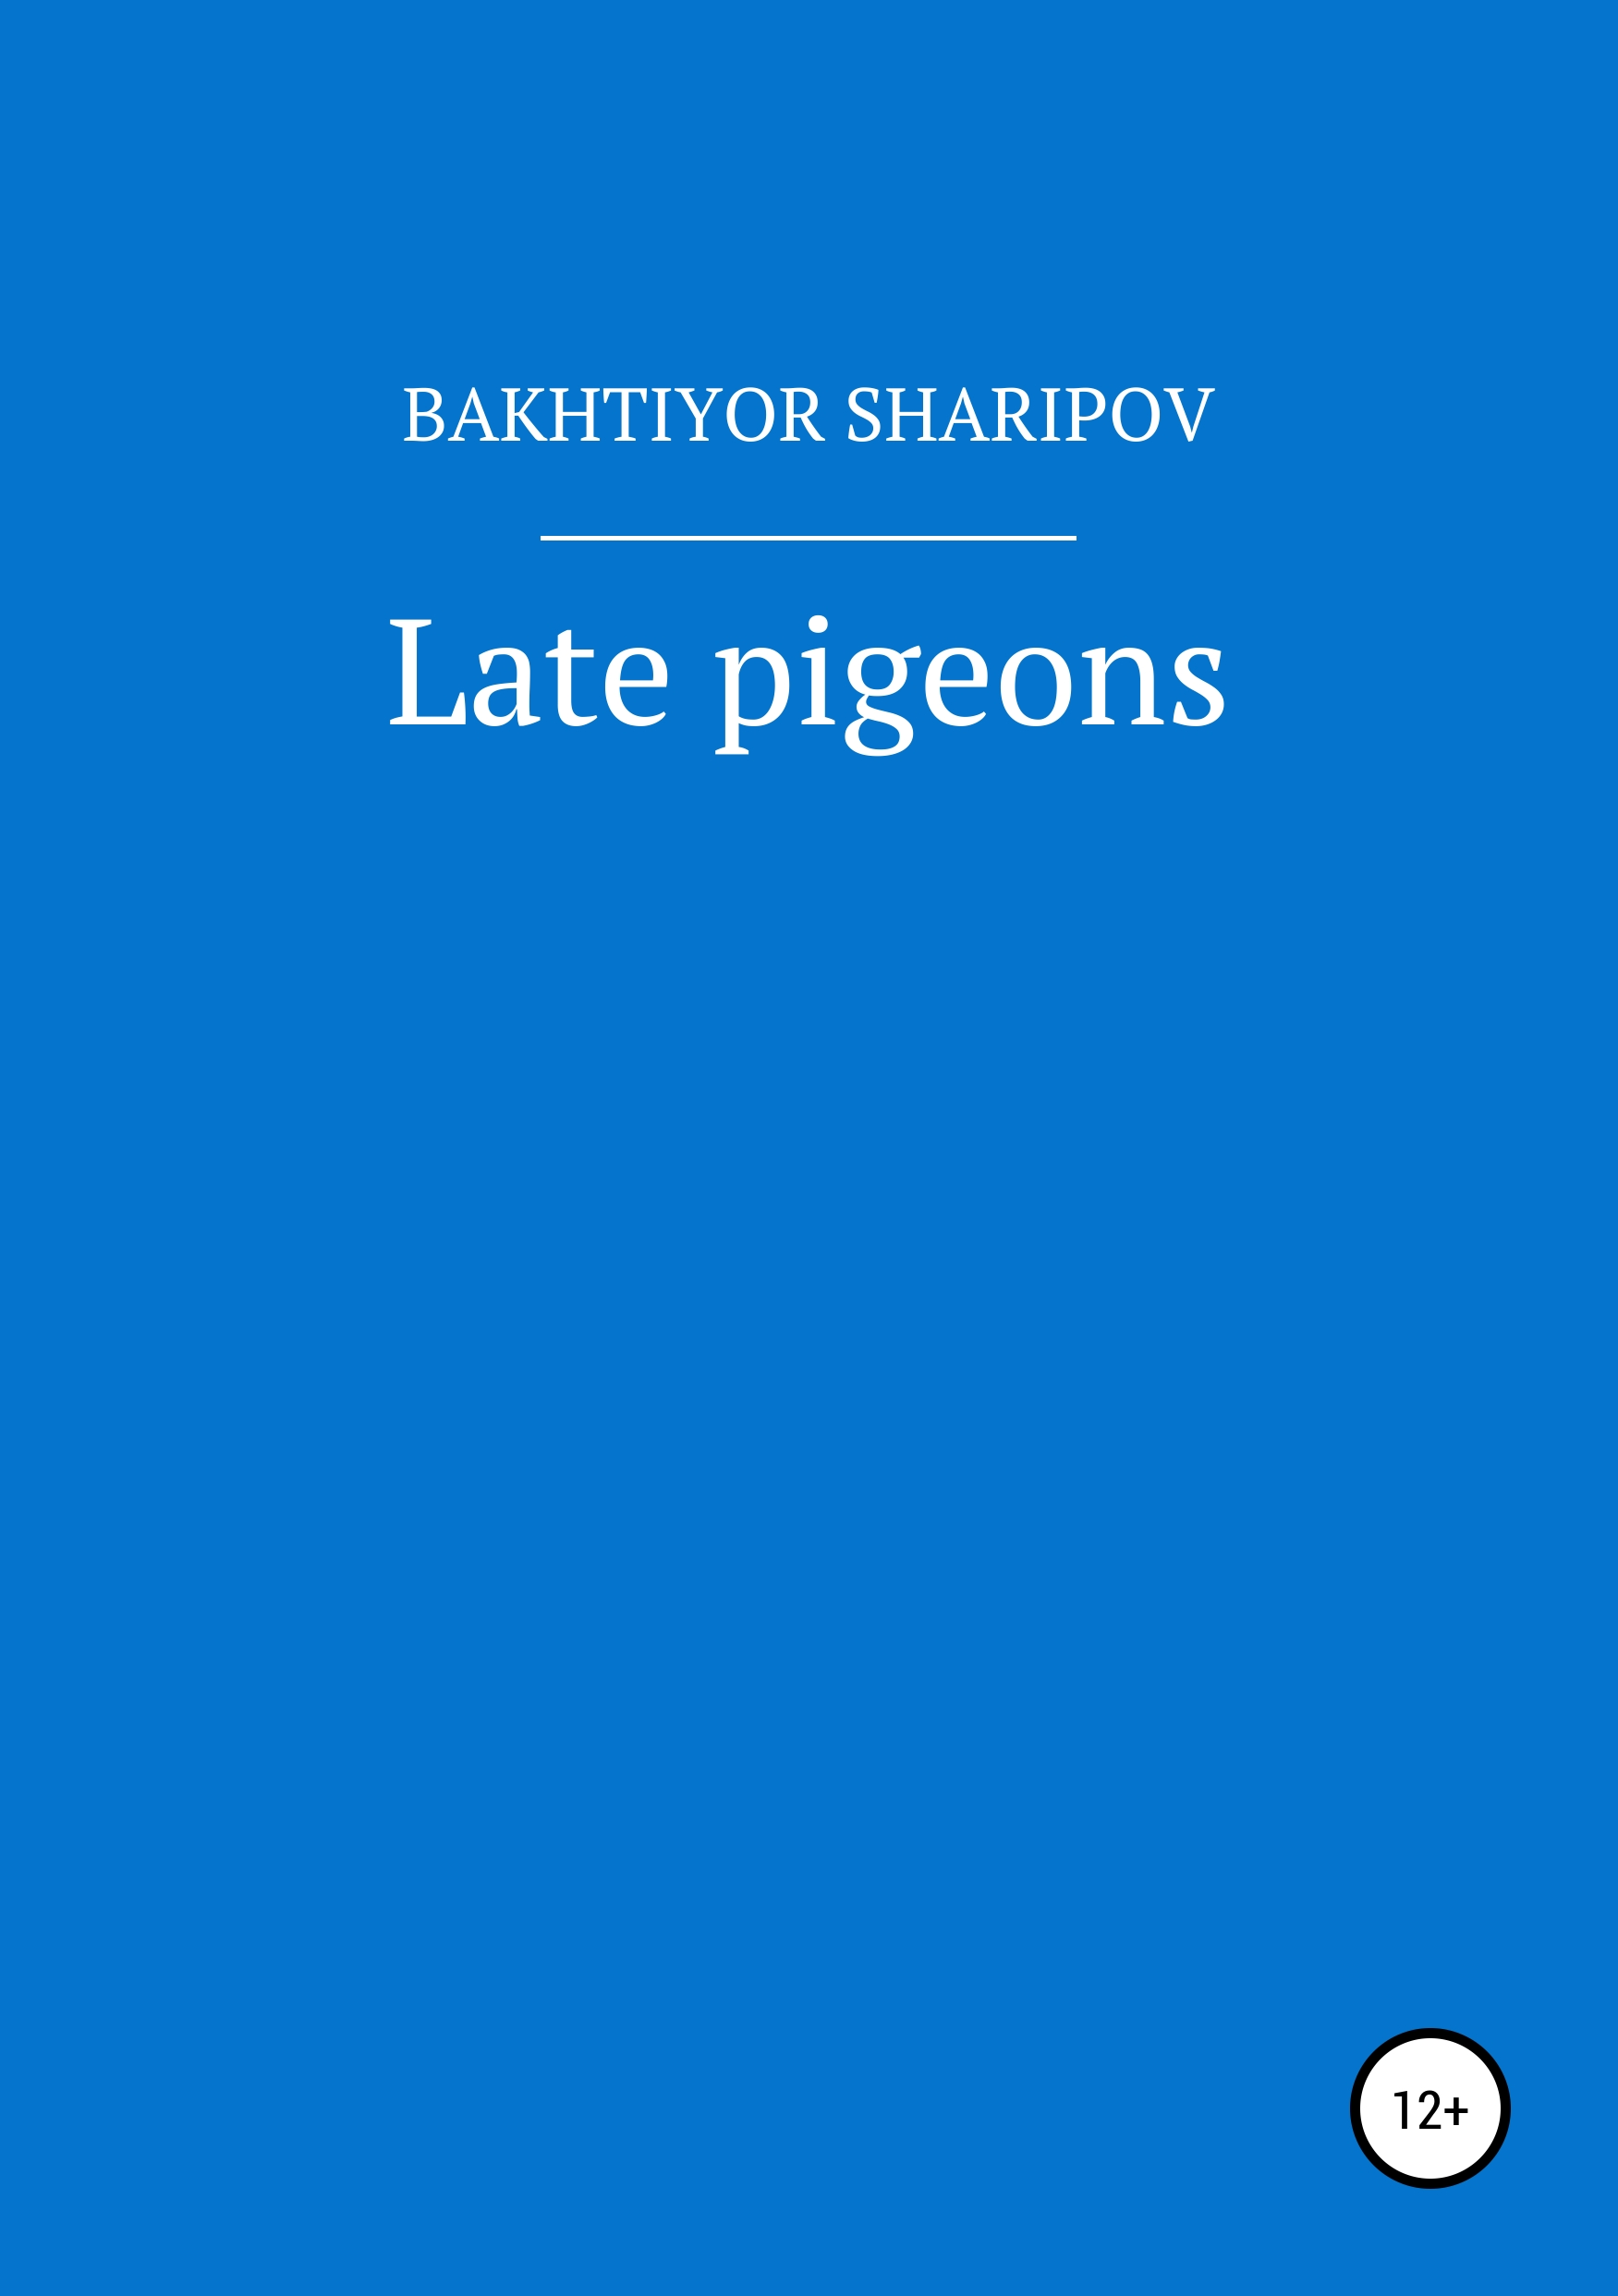 Late pigeons